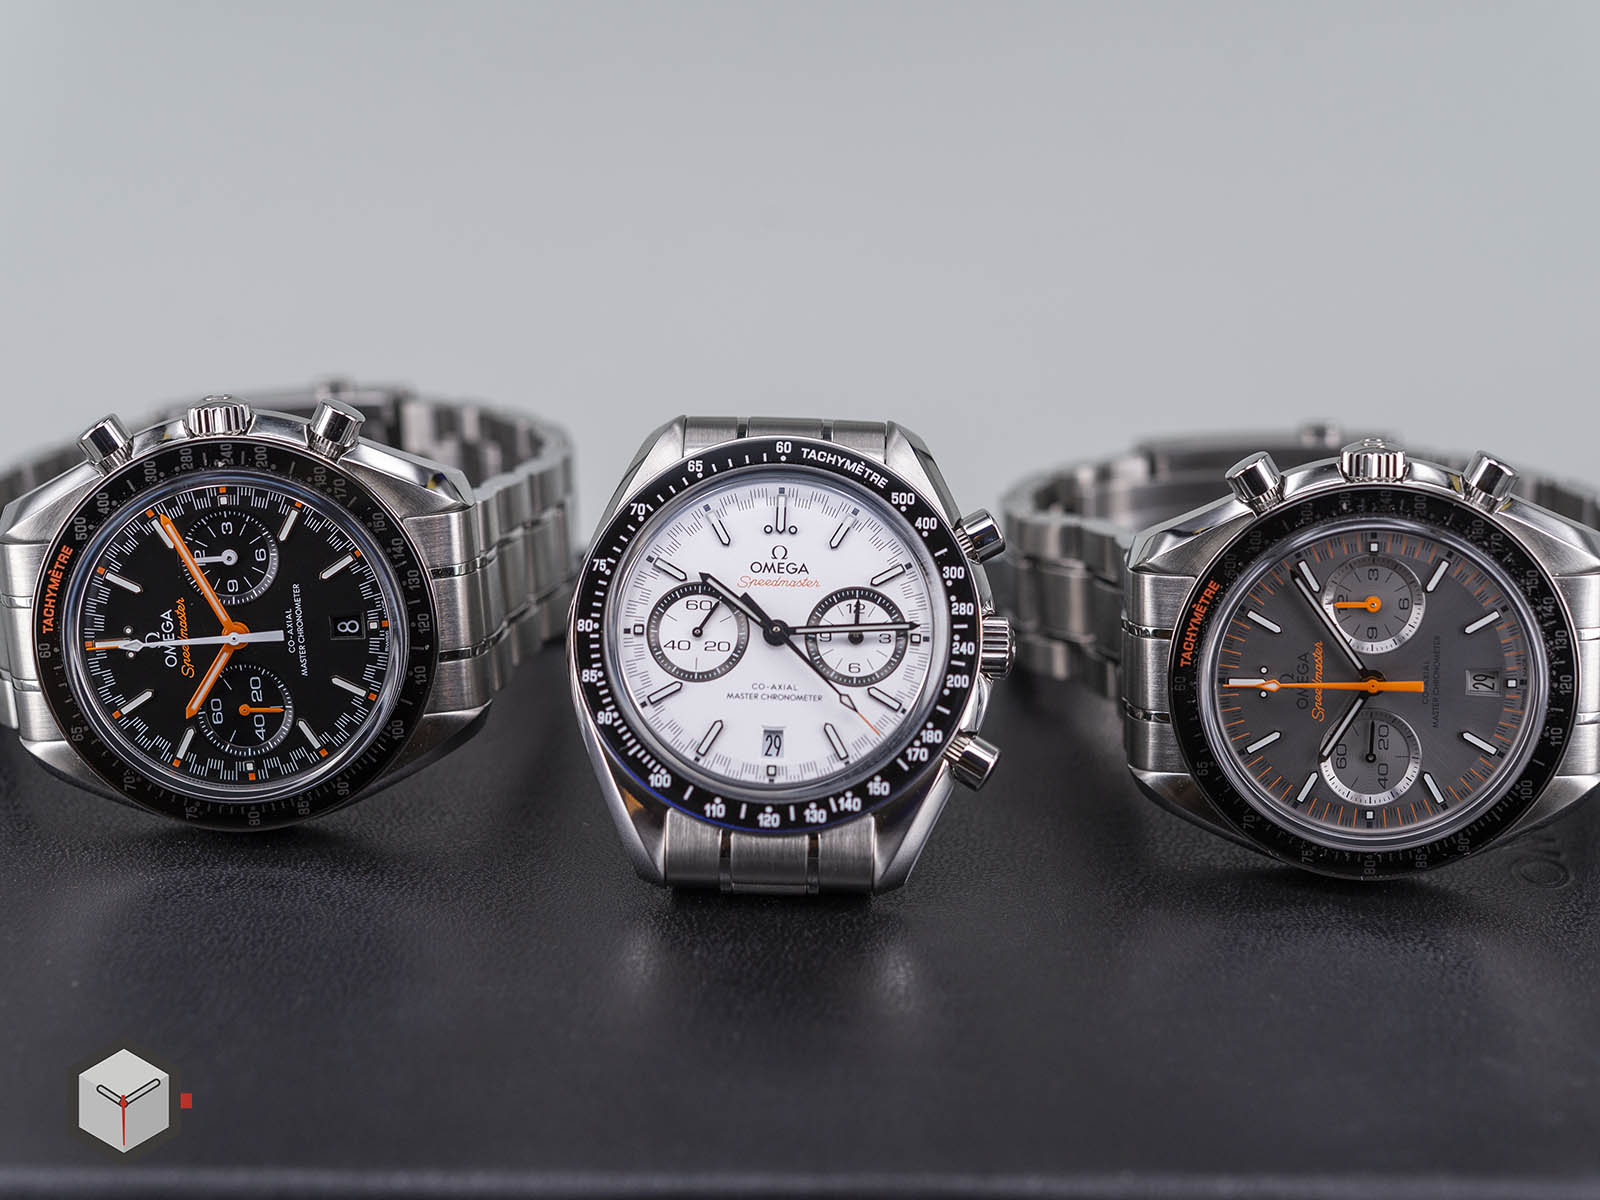 329-30-44-51-04-001-omega-speedmaster-racing-co-axial-master-11.jpg